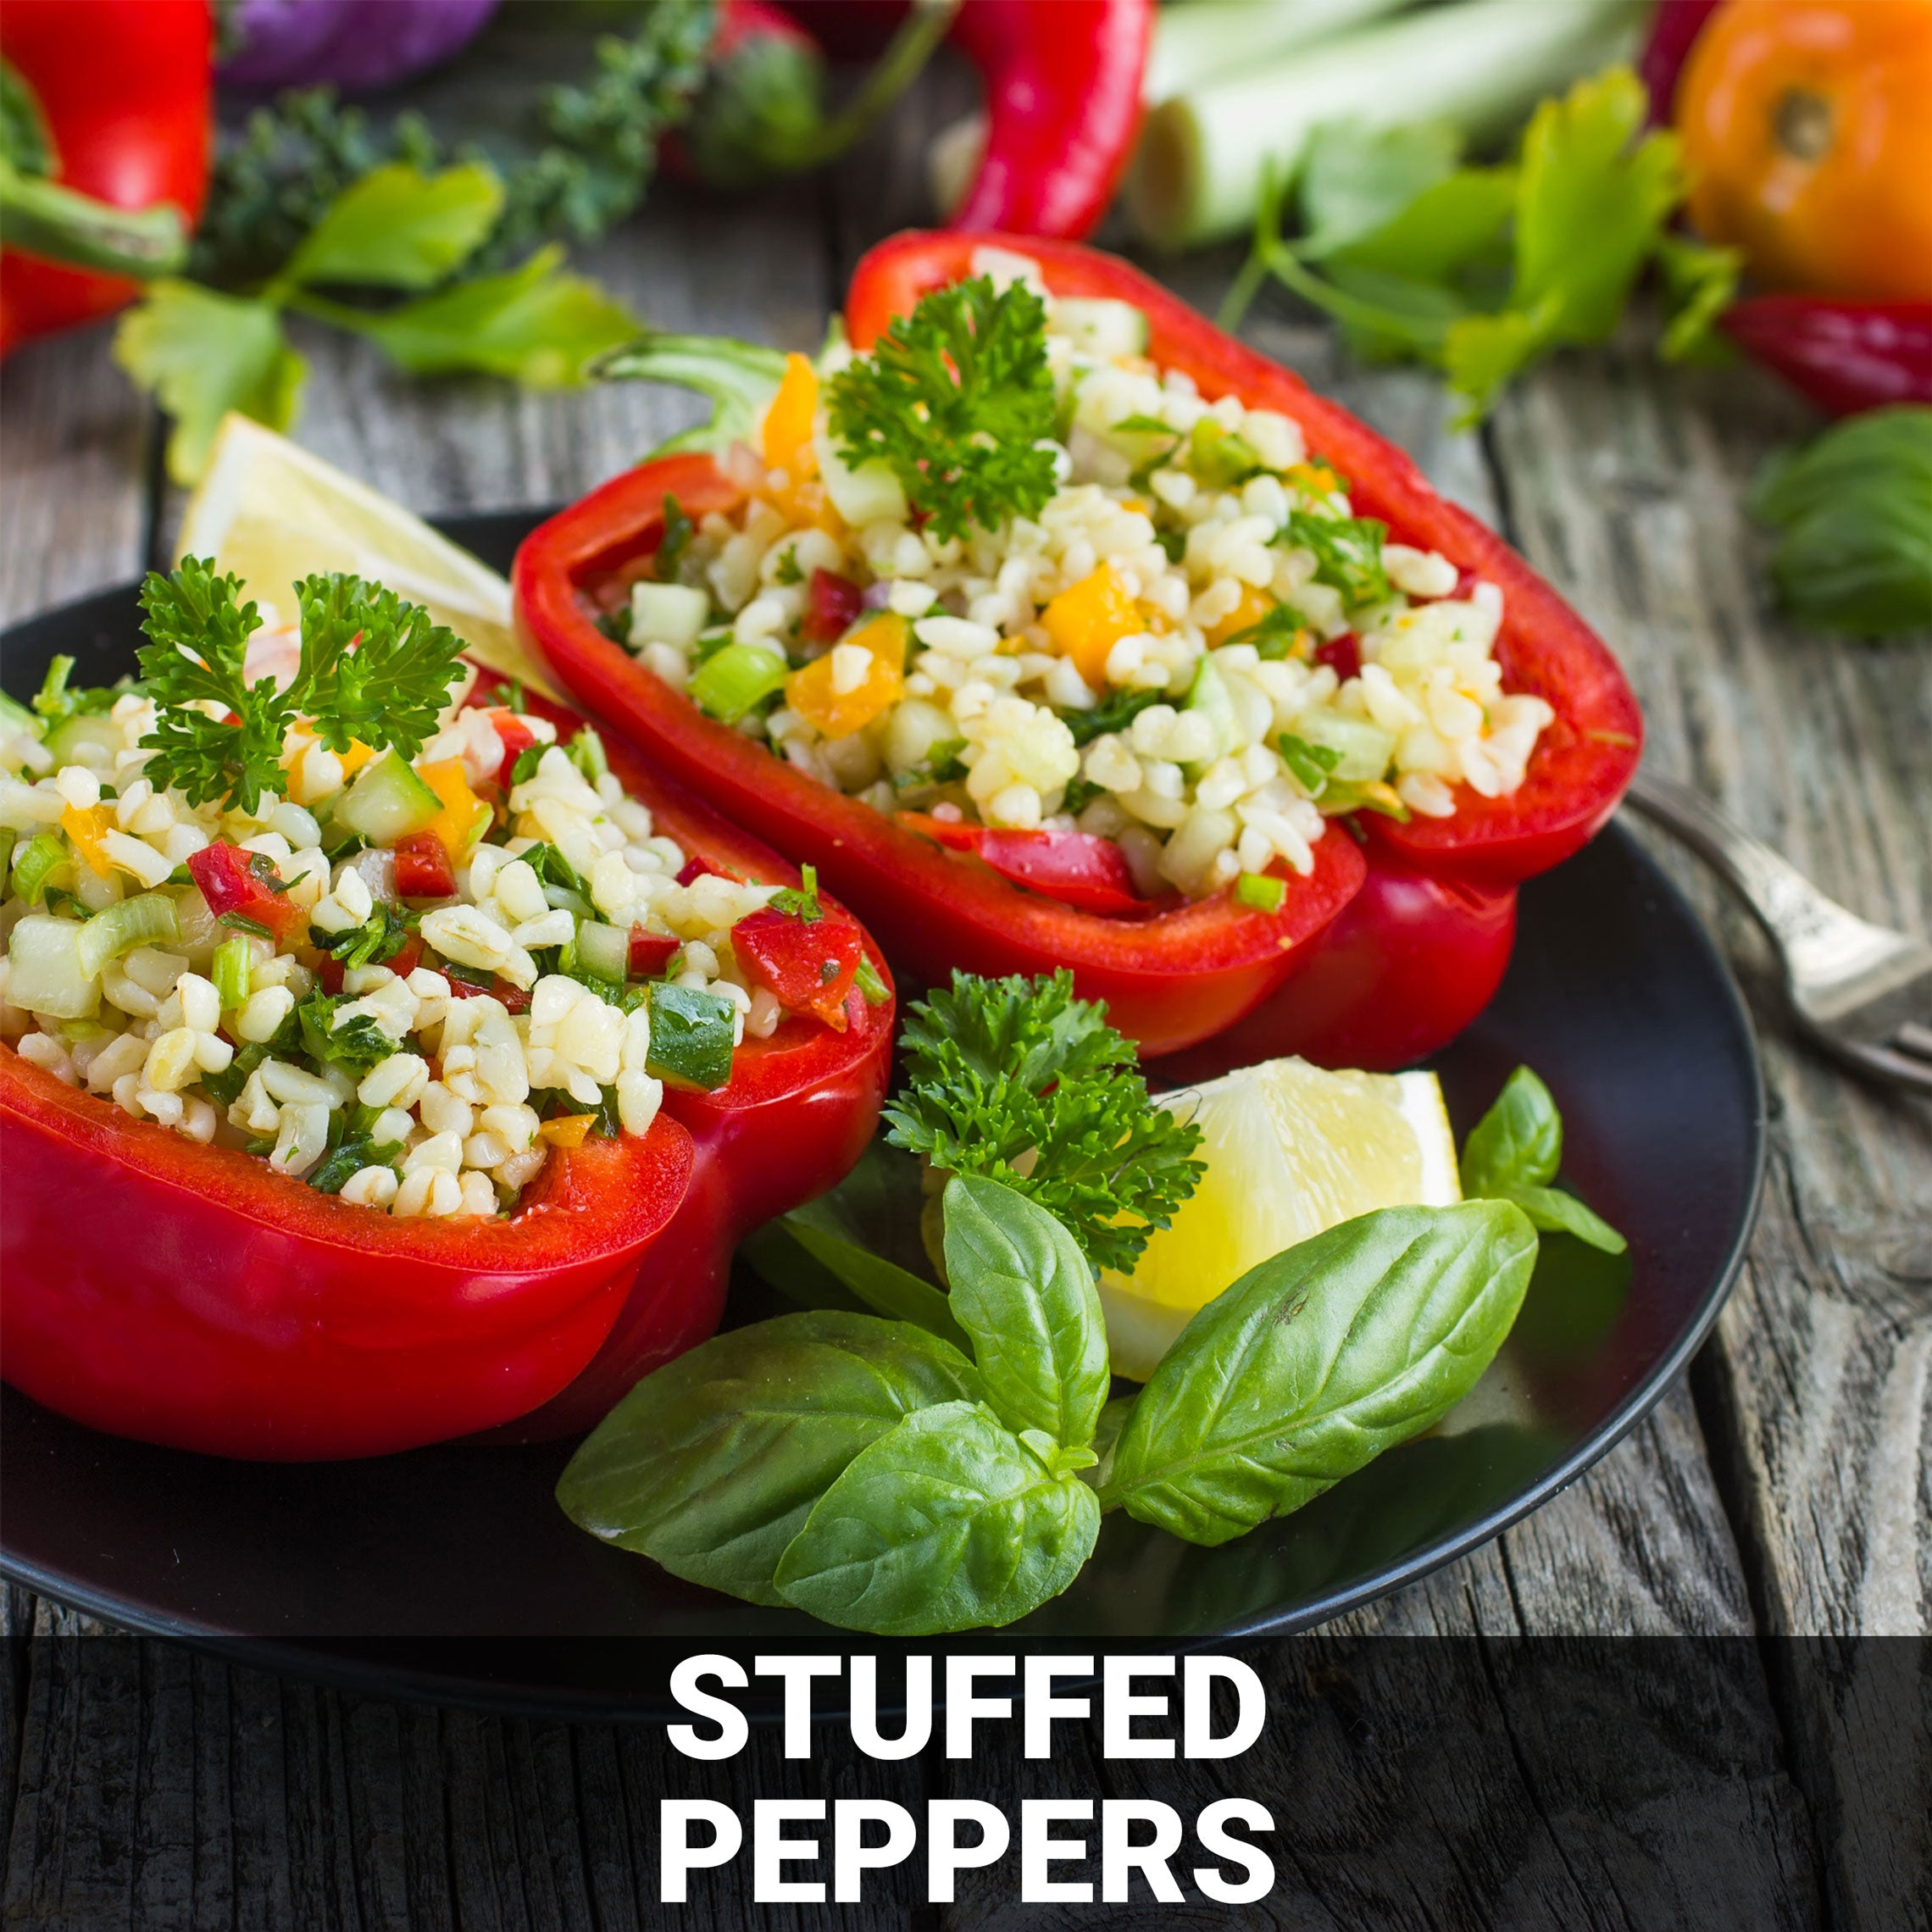 Stuffed Peppers Recipe - Foods Alive